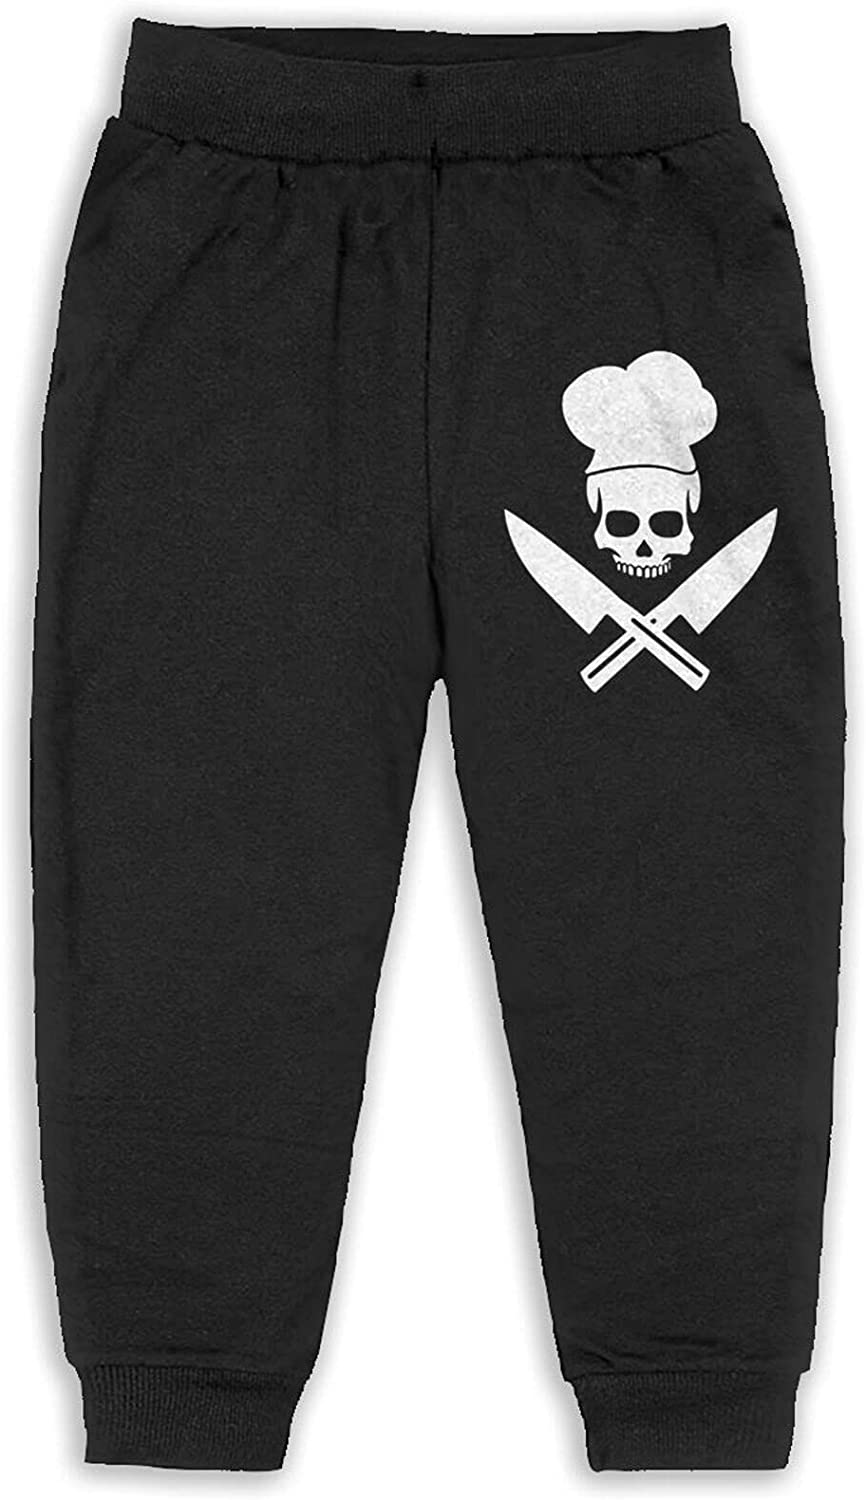 Skull-Chef Cooking Skull Baby Boy Toddler Boys'Cotton Jogger Cuff Pants 2t-6 (5-6 Years)